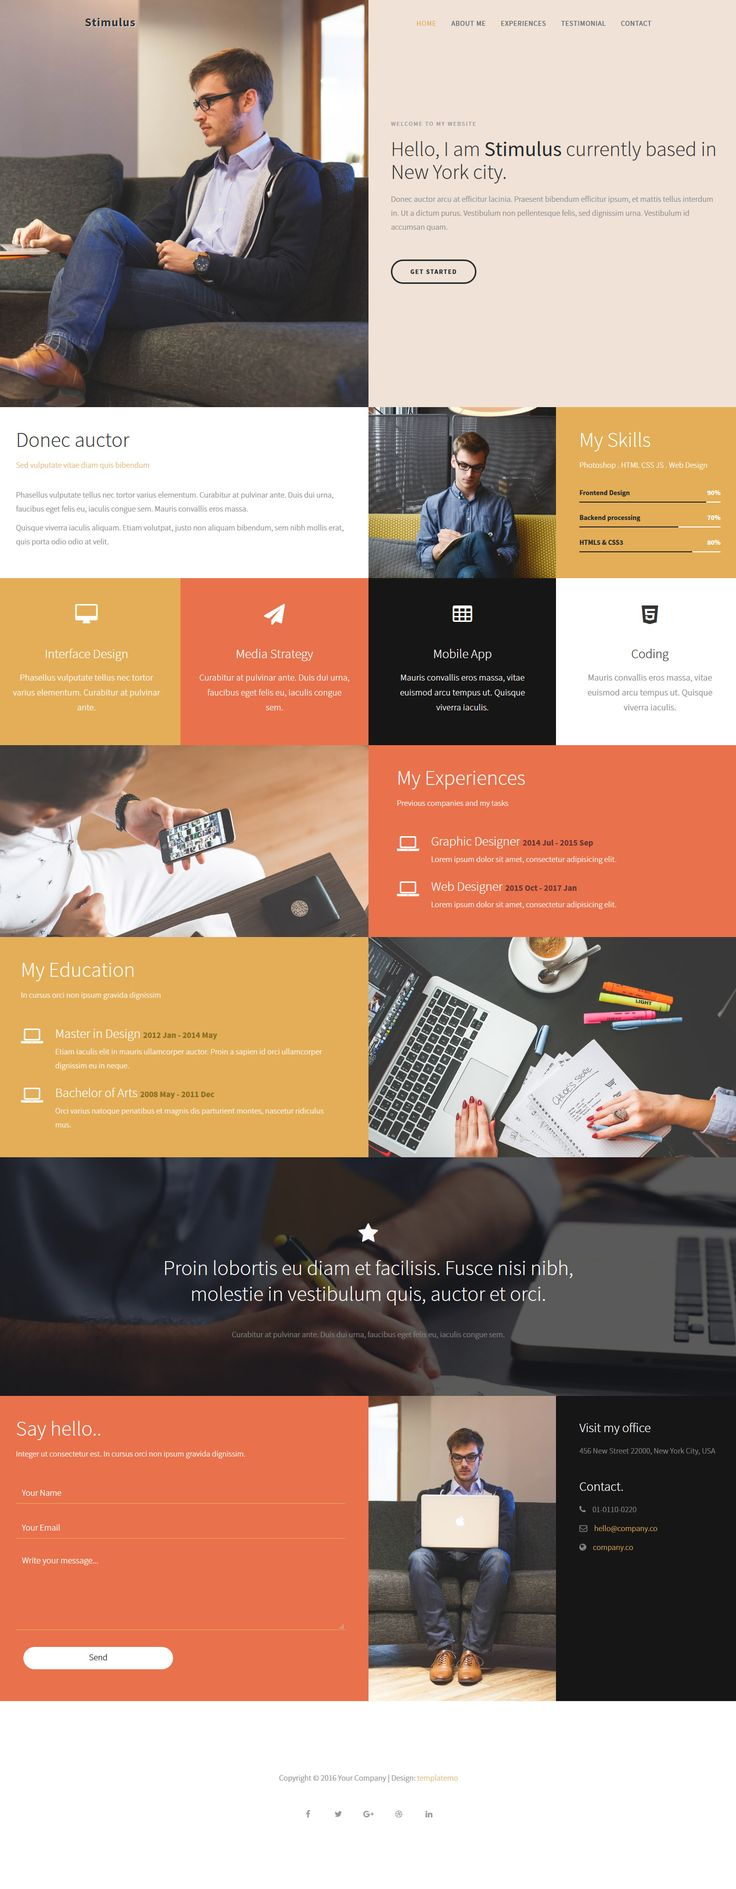 #WebDesign #OnePage #Template Stimulus template is a one-page HTML CSS layout with metro style sections. Gold / orange / red colors used.